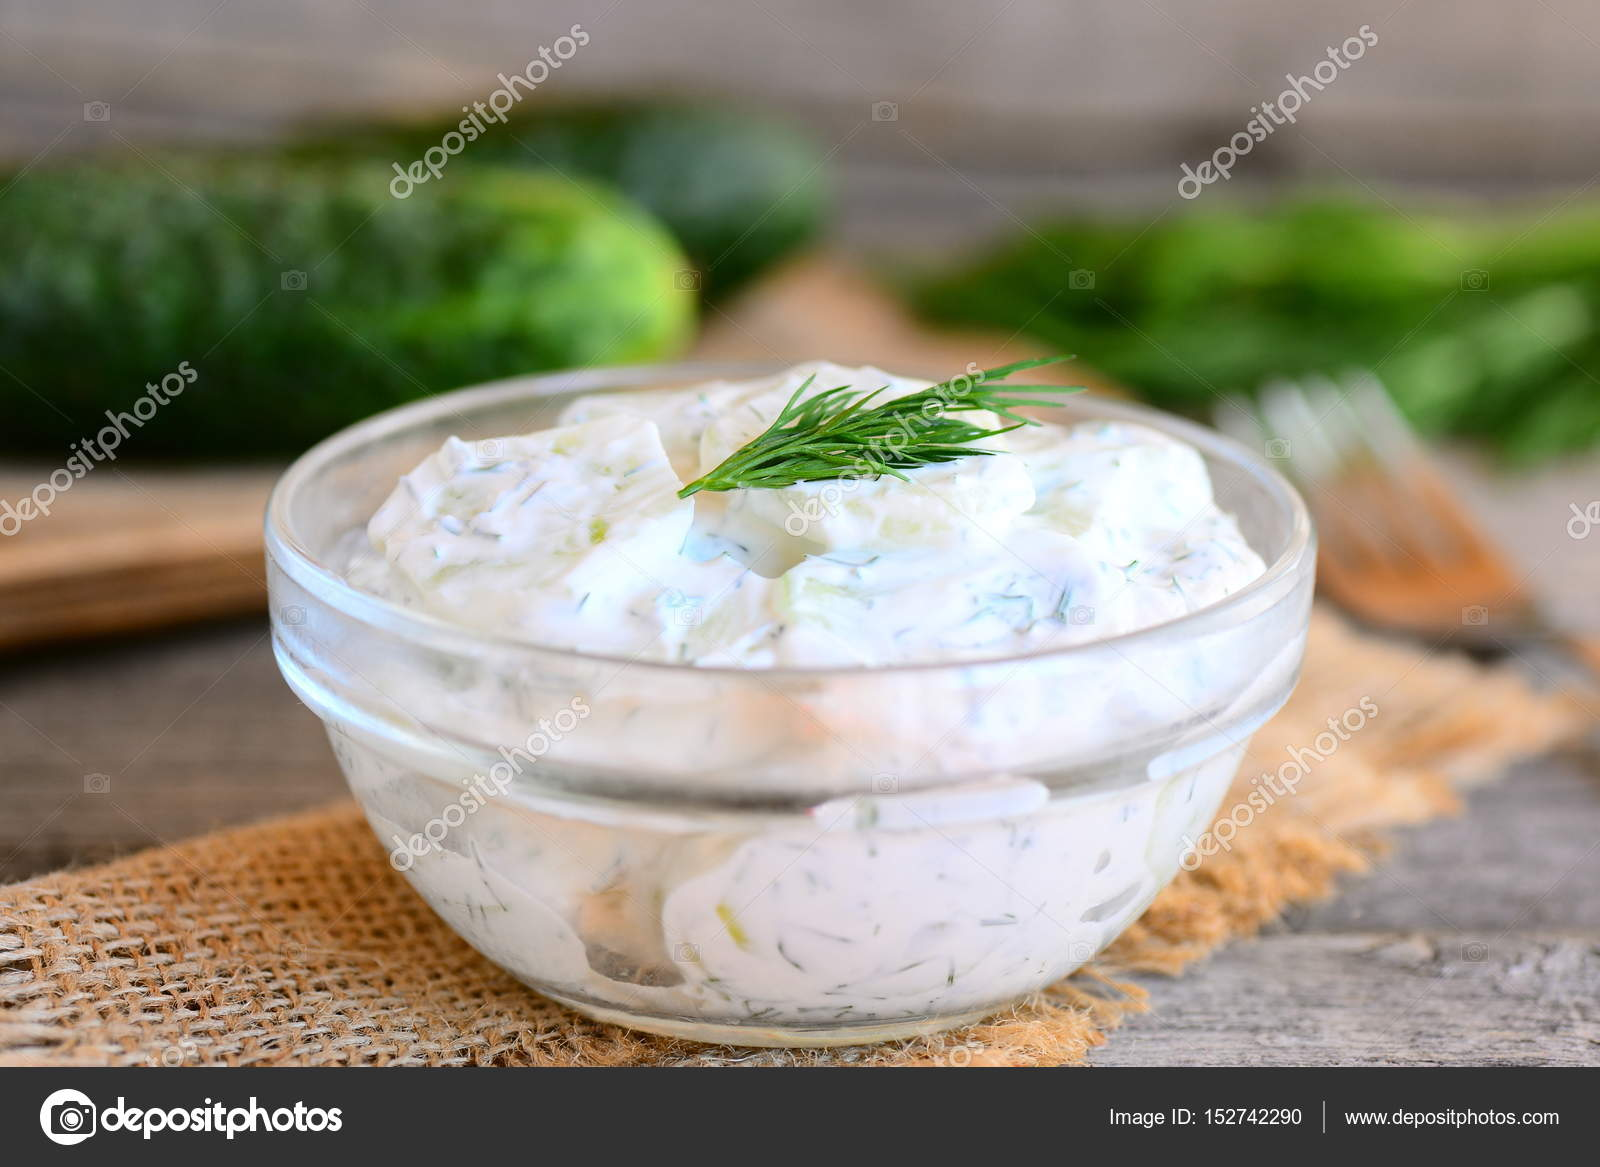 Creamy cucumber salad with garden fresh cucumbers, dill and